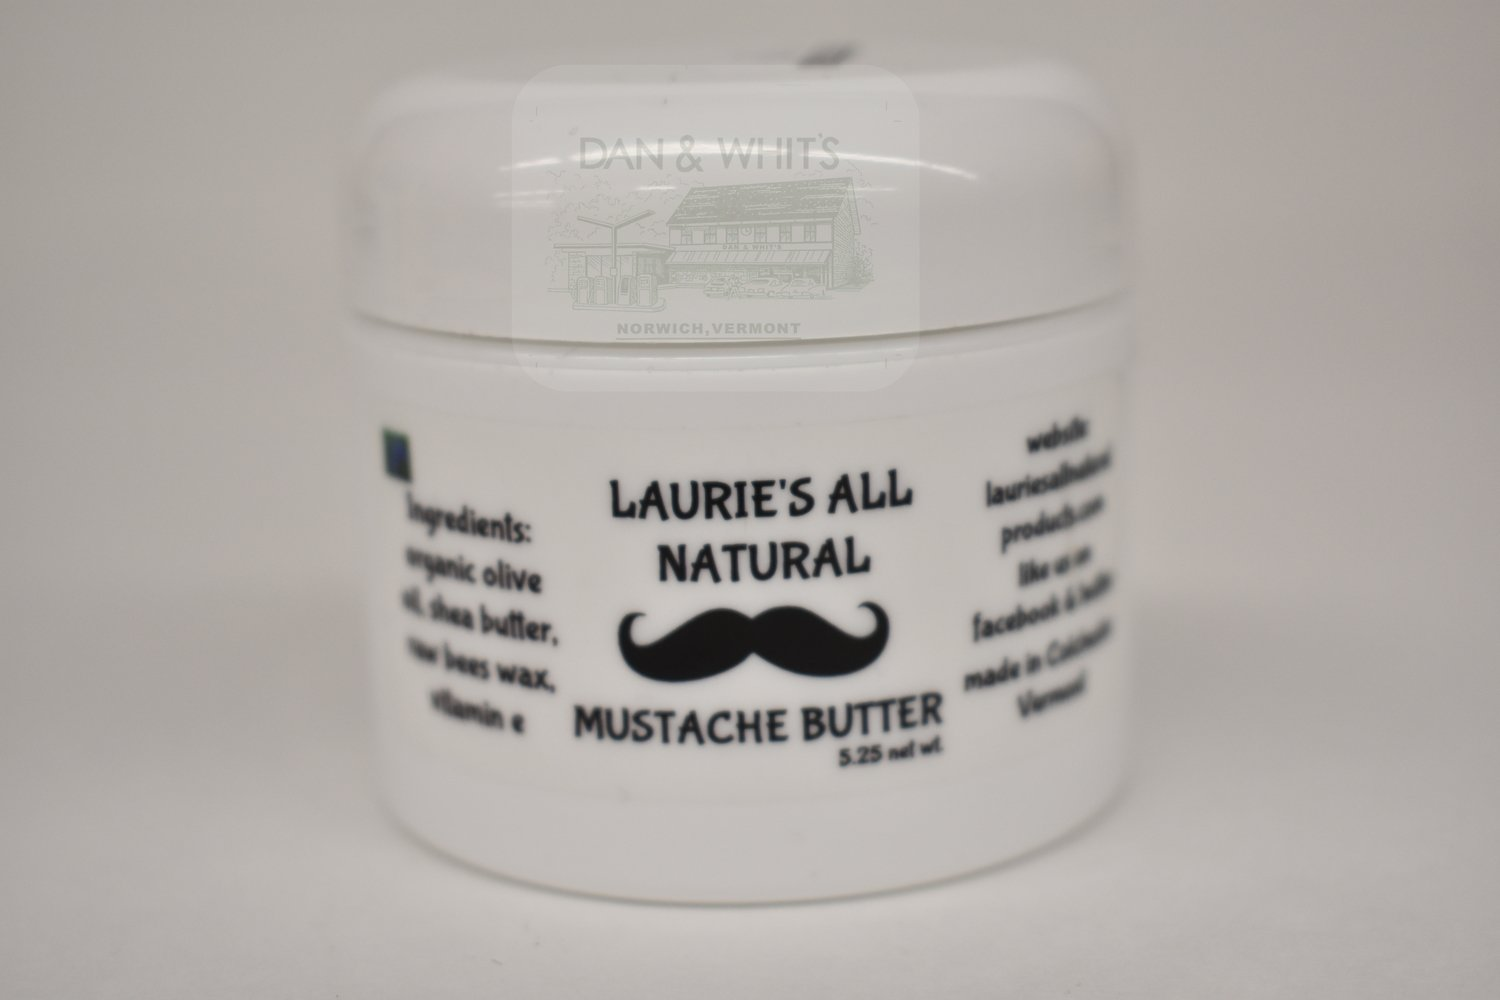 Laurie's All Natural Mustache Butter